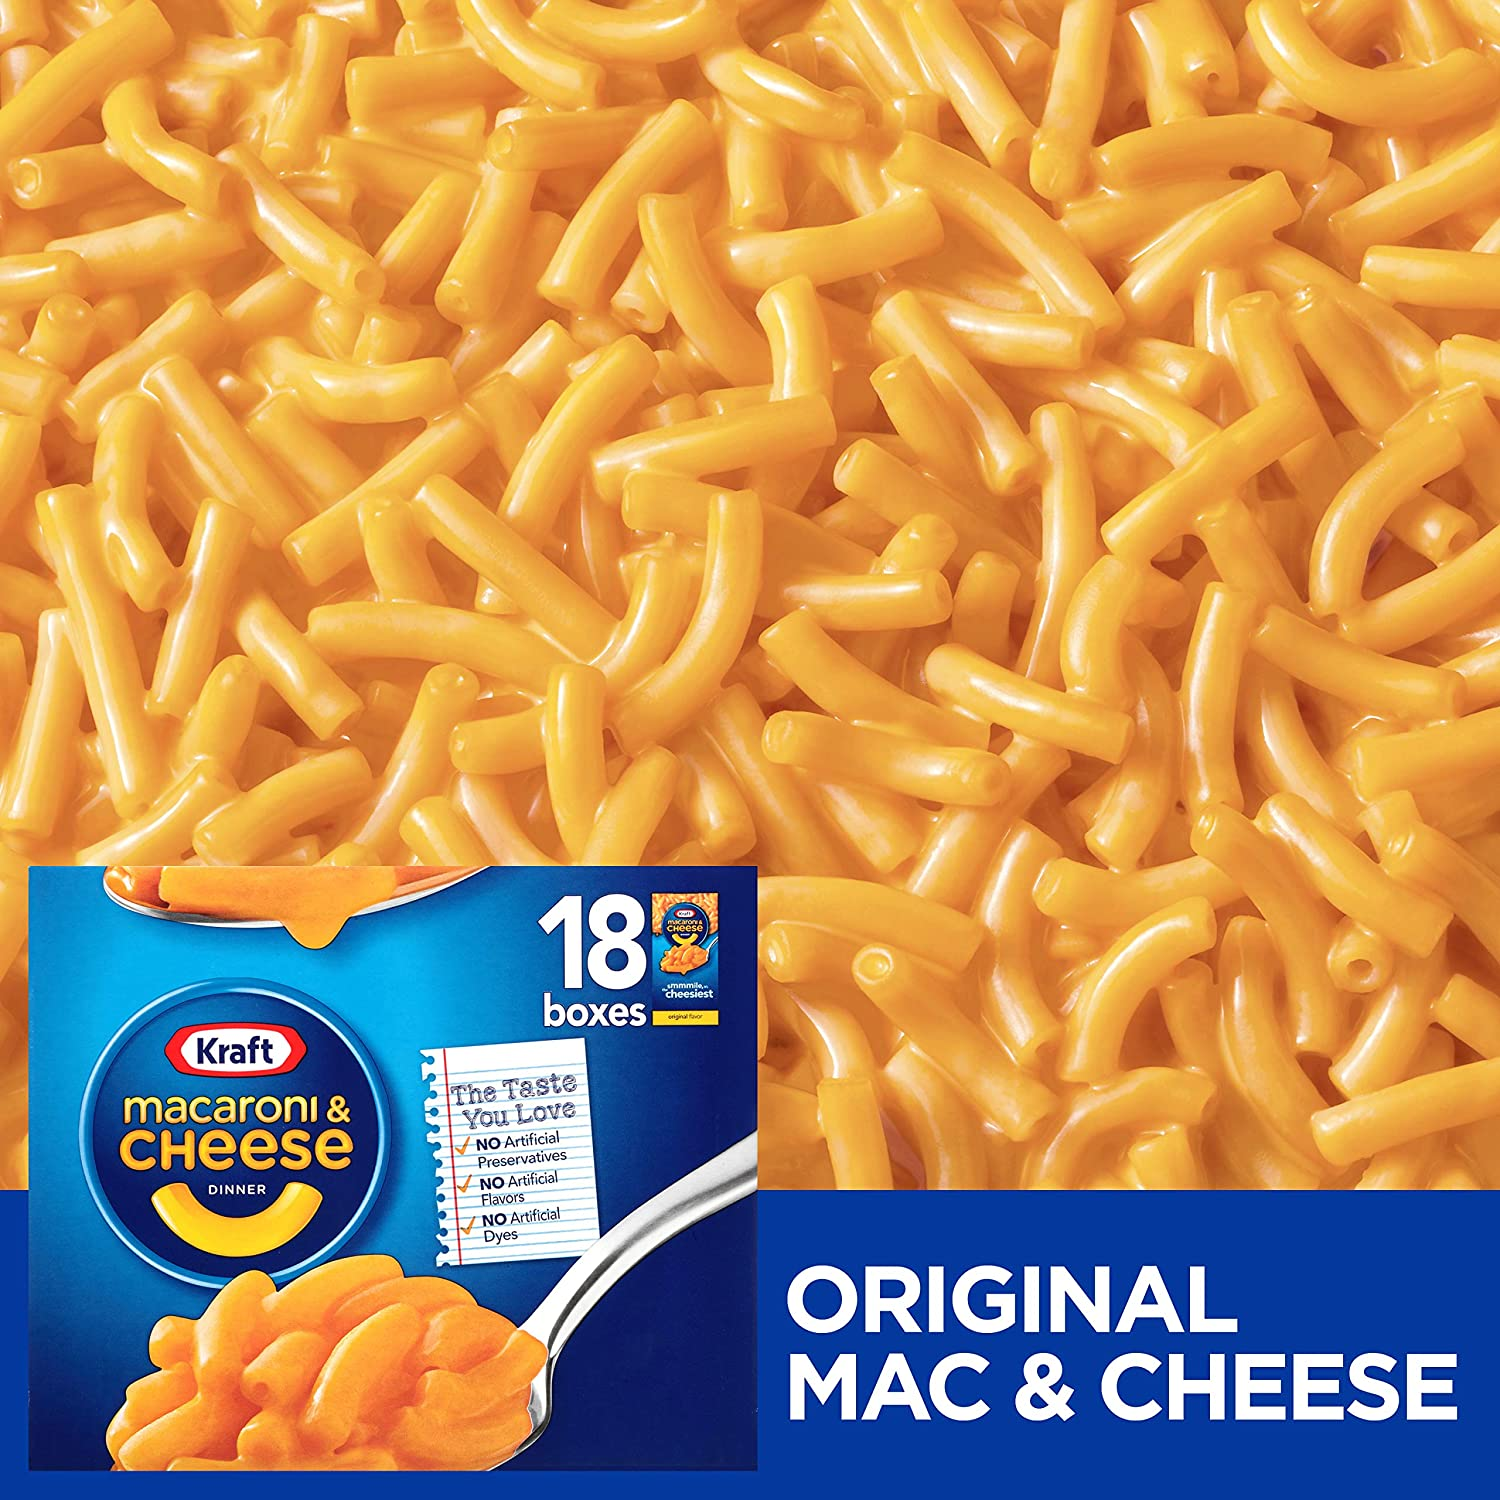 who owns kraft mac and cheese